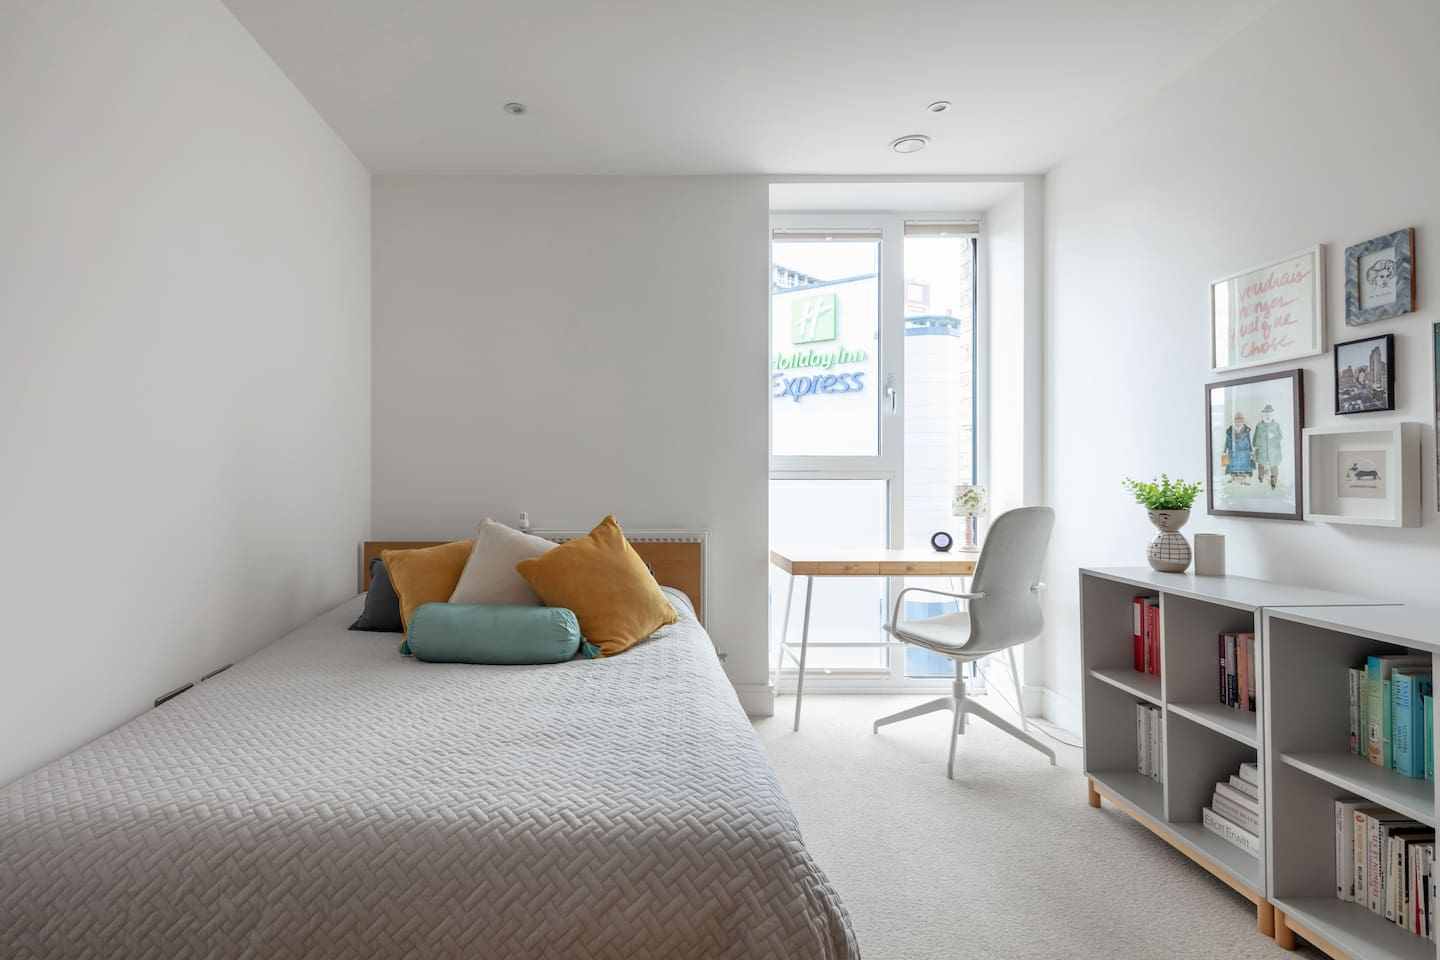 The bedroom. Includes a desk and plenty of surface space for your stuff.